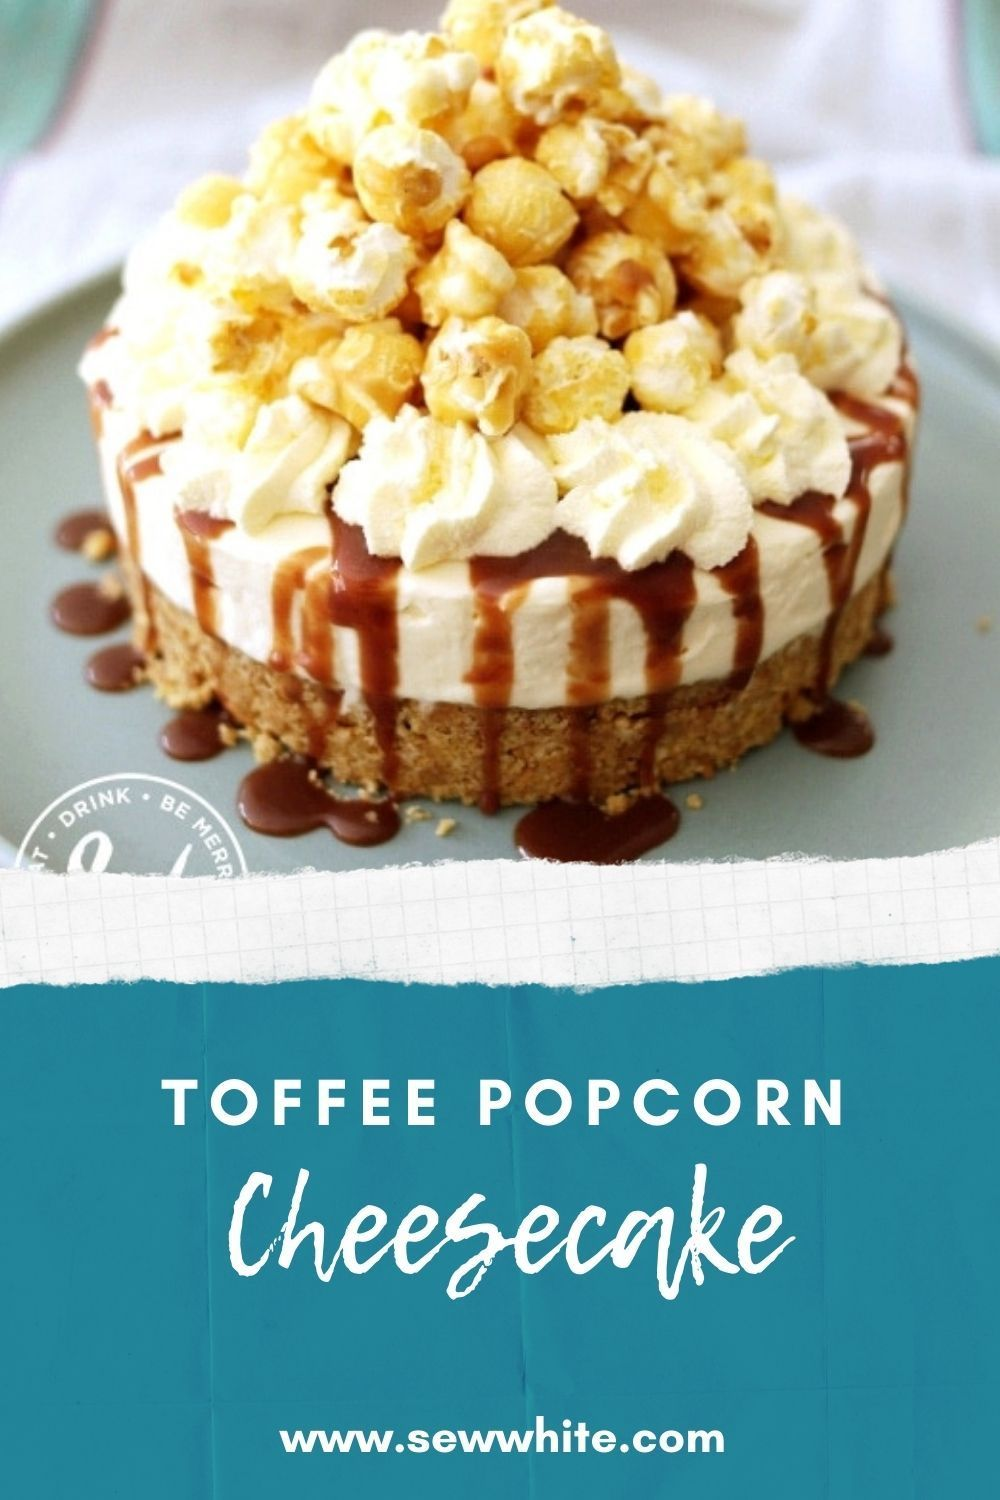 Photo of Toffee Popcorn Cheesecake